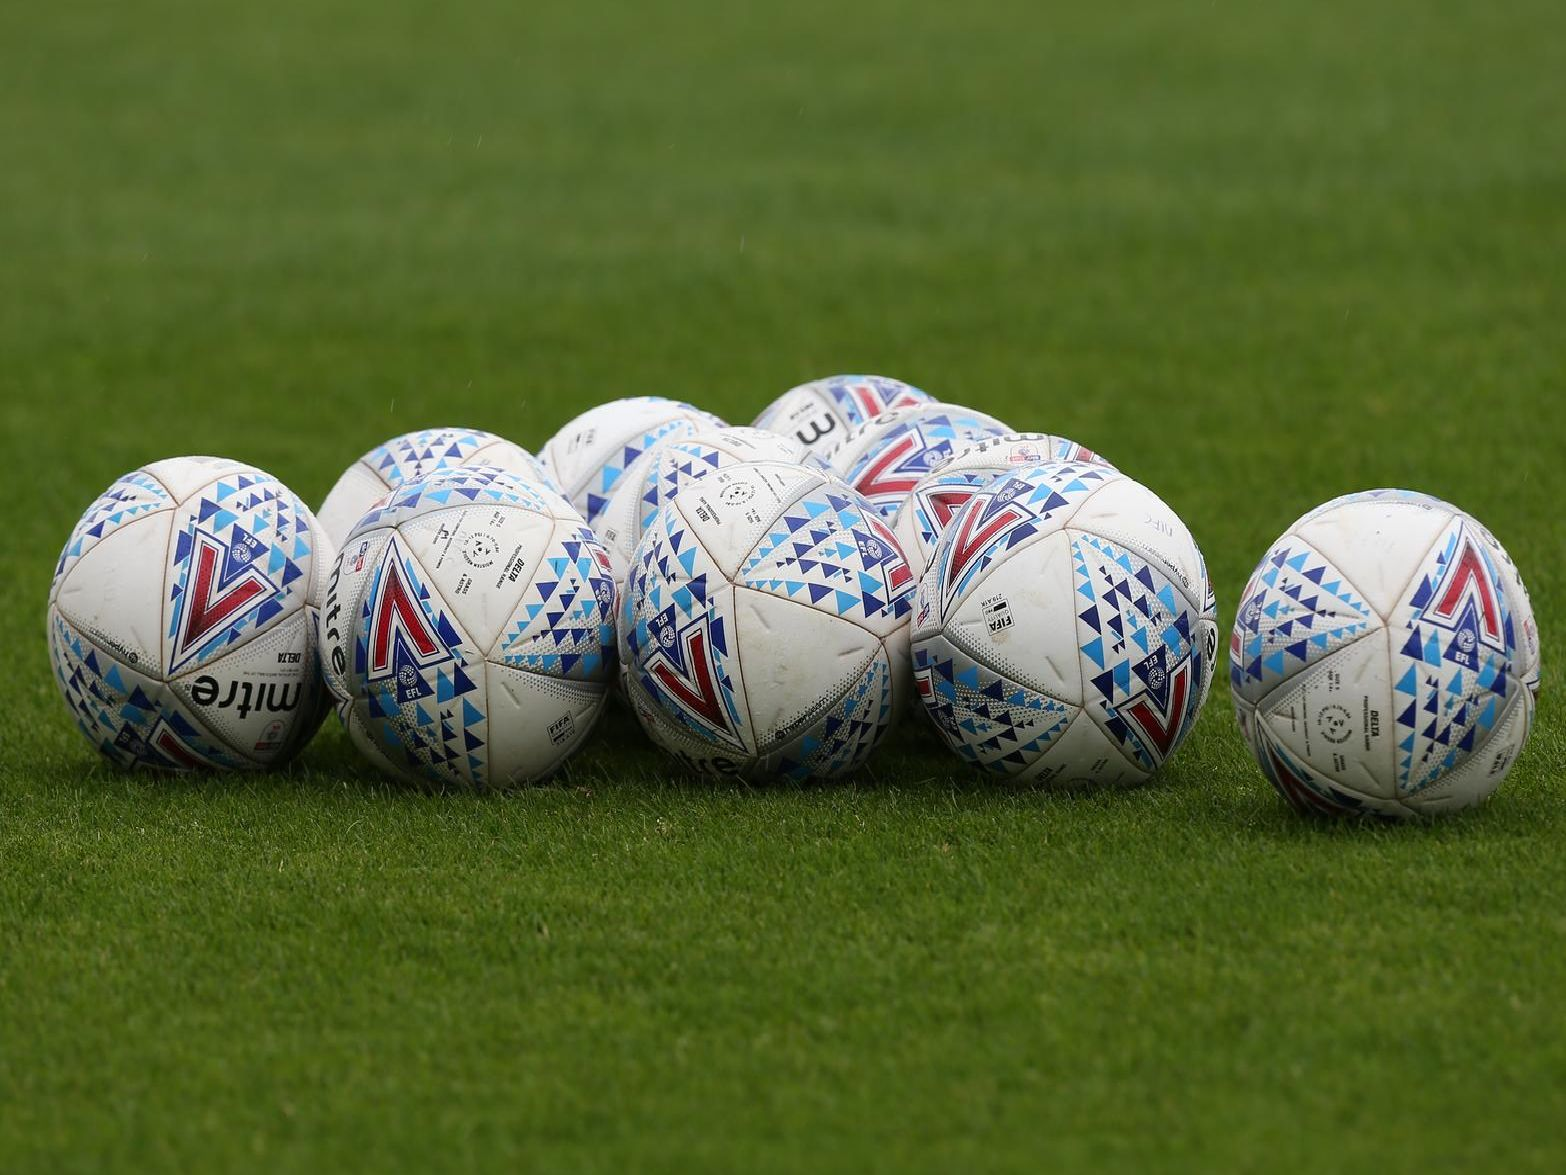 How much EVERY League Two club has spent on agent fees this year - 1million in total